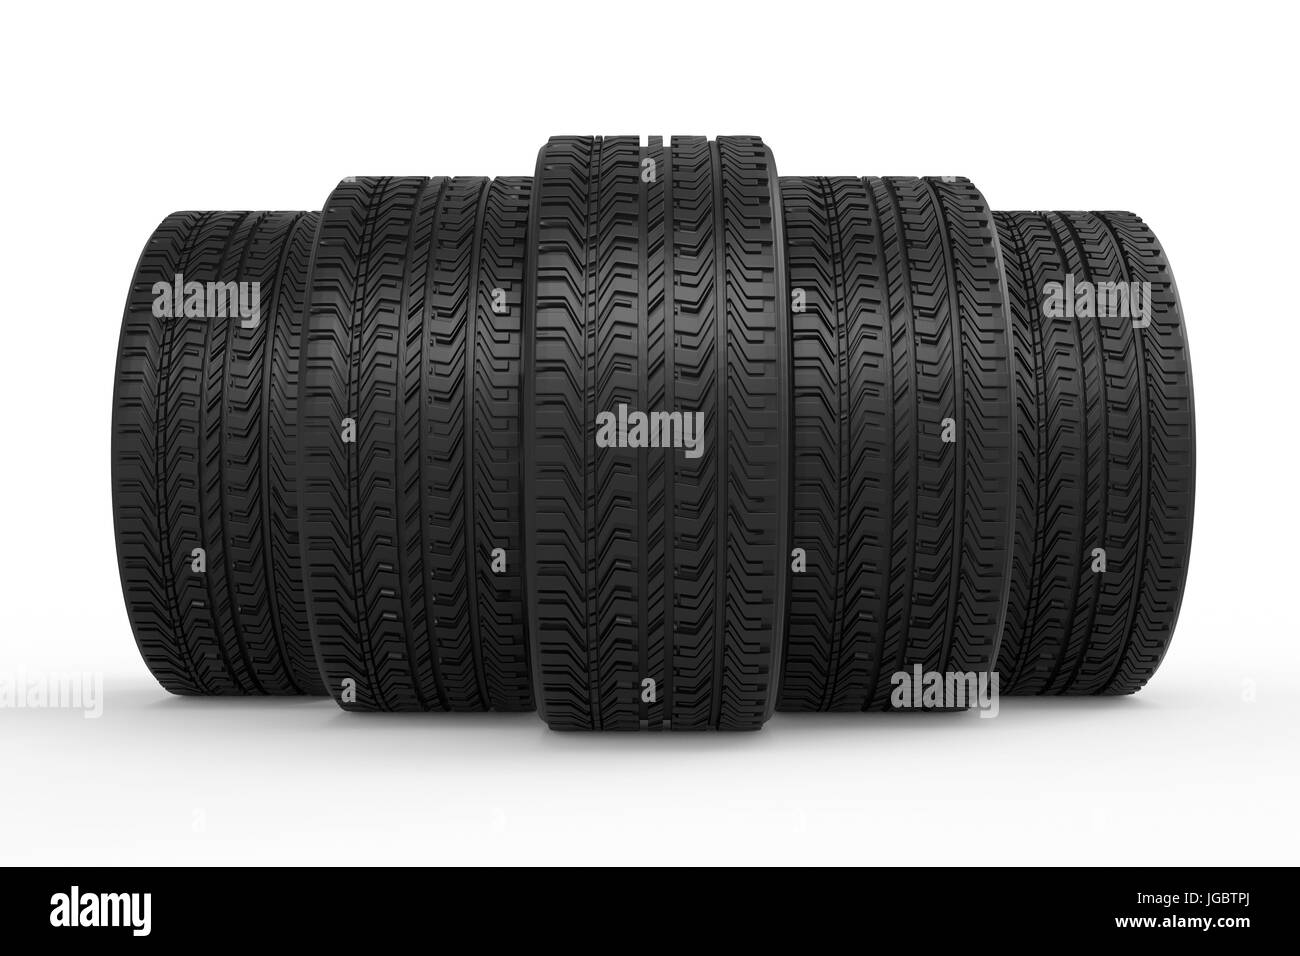 3d rendering black tires with tread pattern - Stock Image